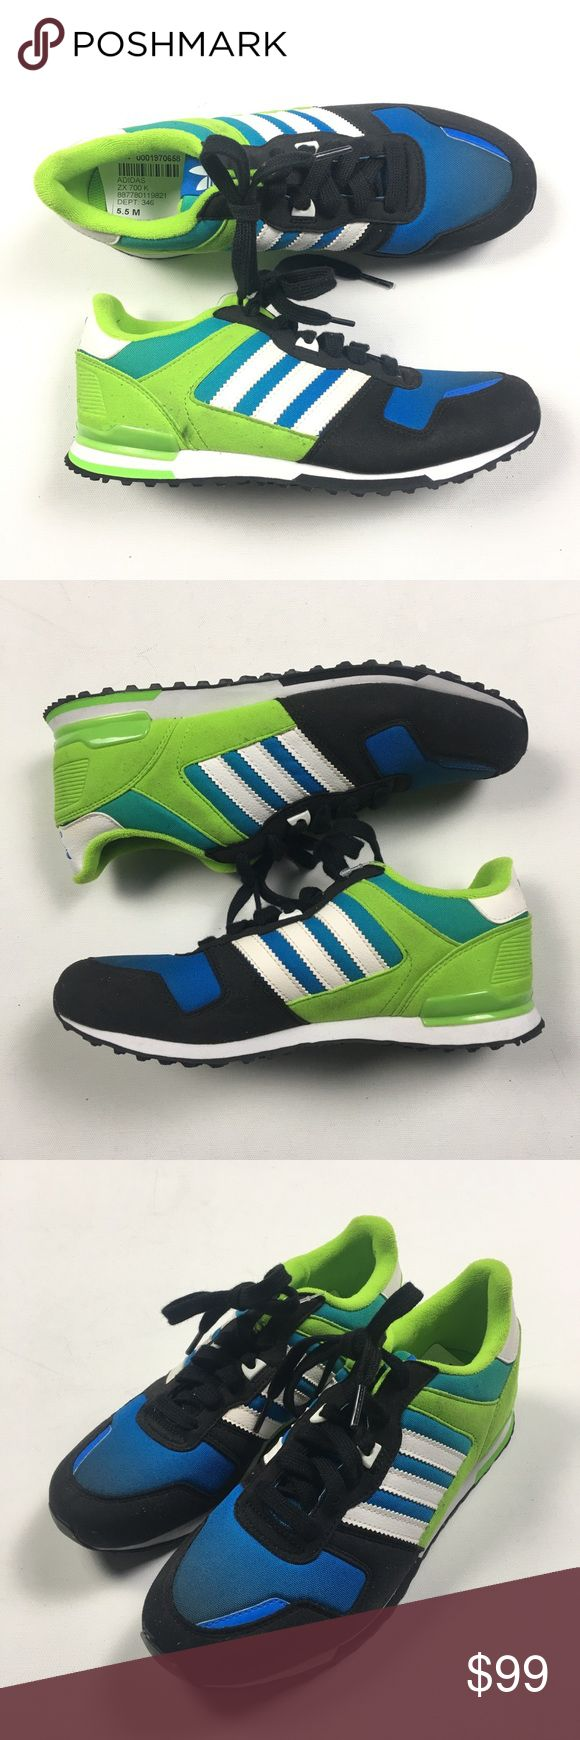 Adidas ZX 700 Sz L5.5 R4.5 MISMATCH Shoes Brand new. Mismatched sizing. L5.5 R4.5. Discounted AF. adidas Shoes Sneakers